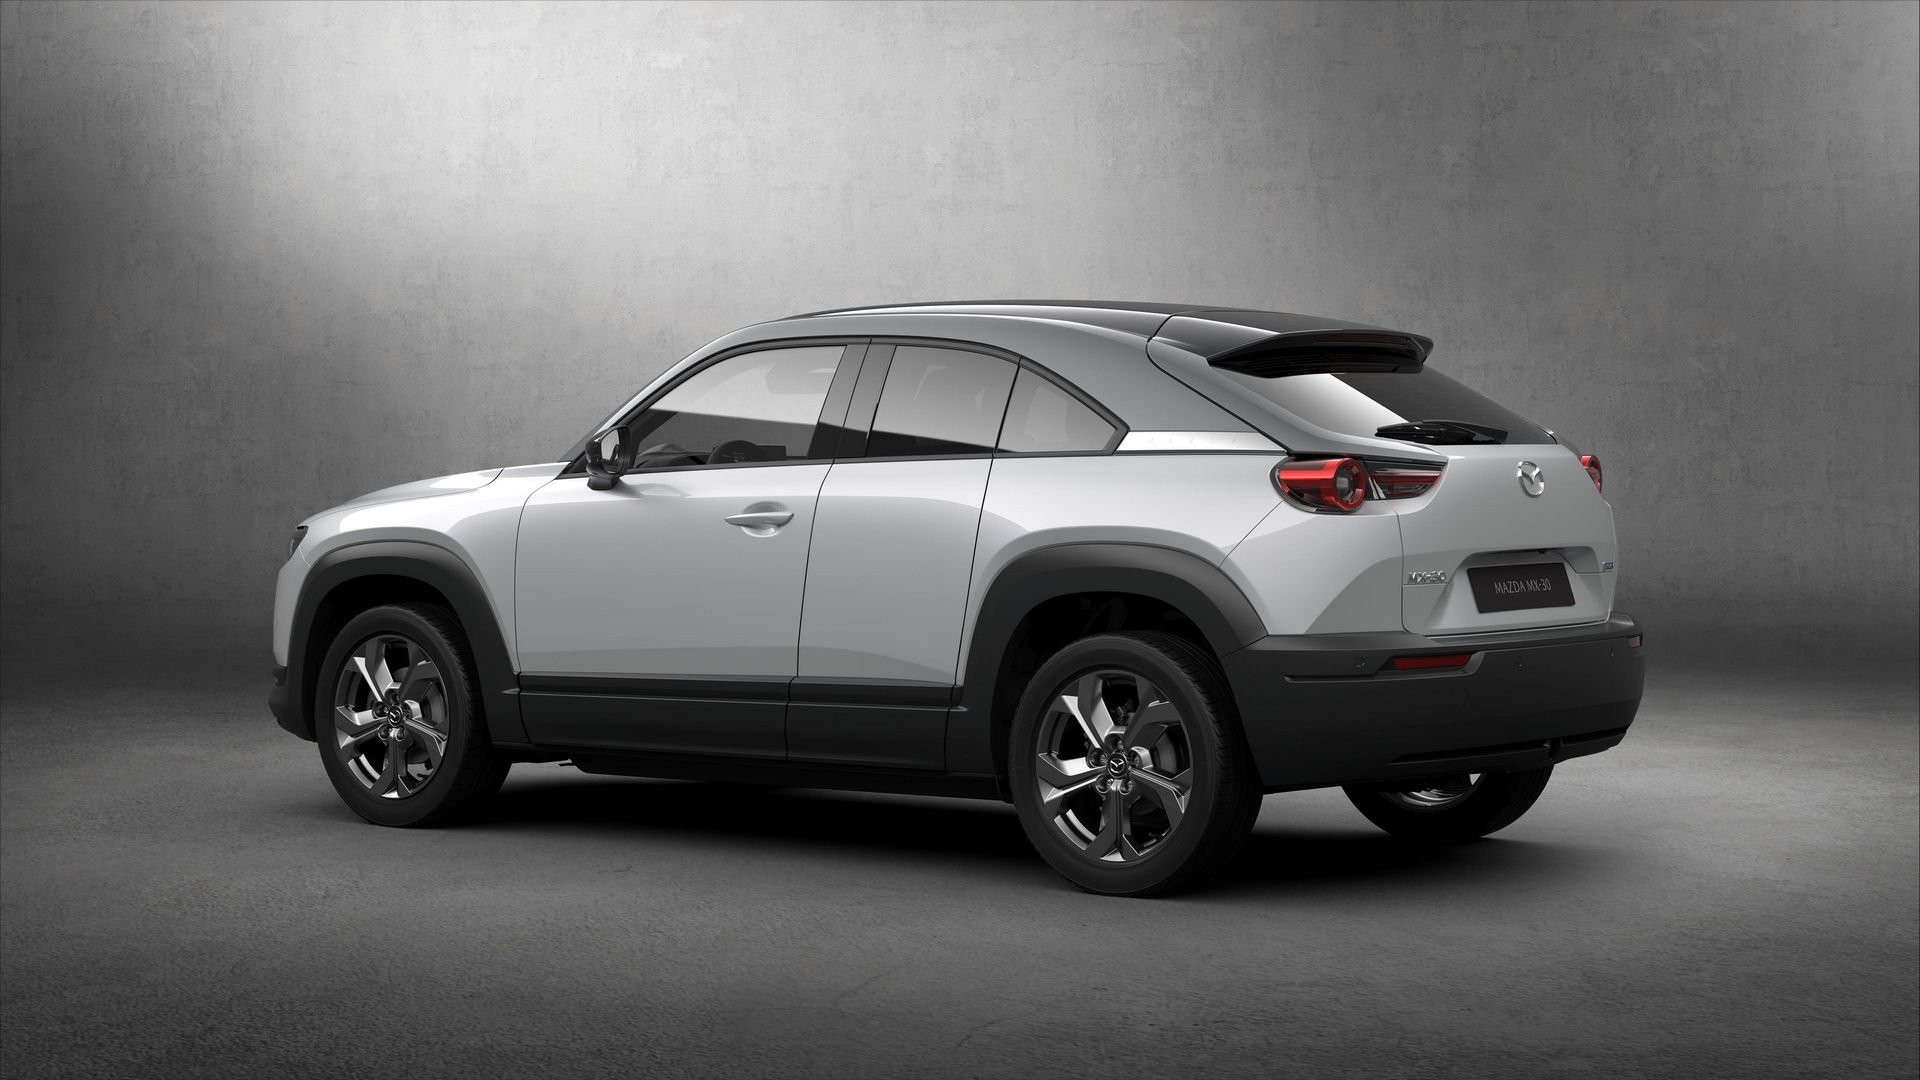 2020 Mazda Mx 30 Electric Crossover May Look Pretty But The